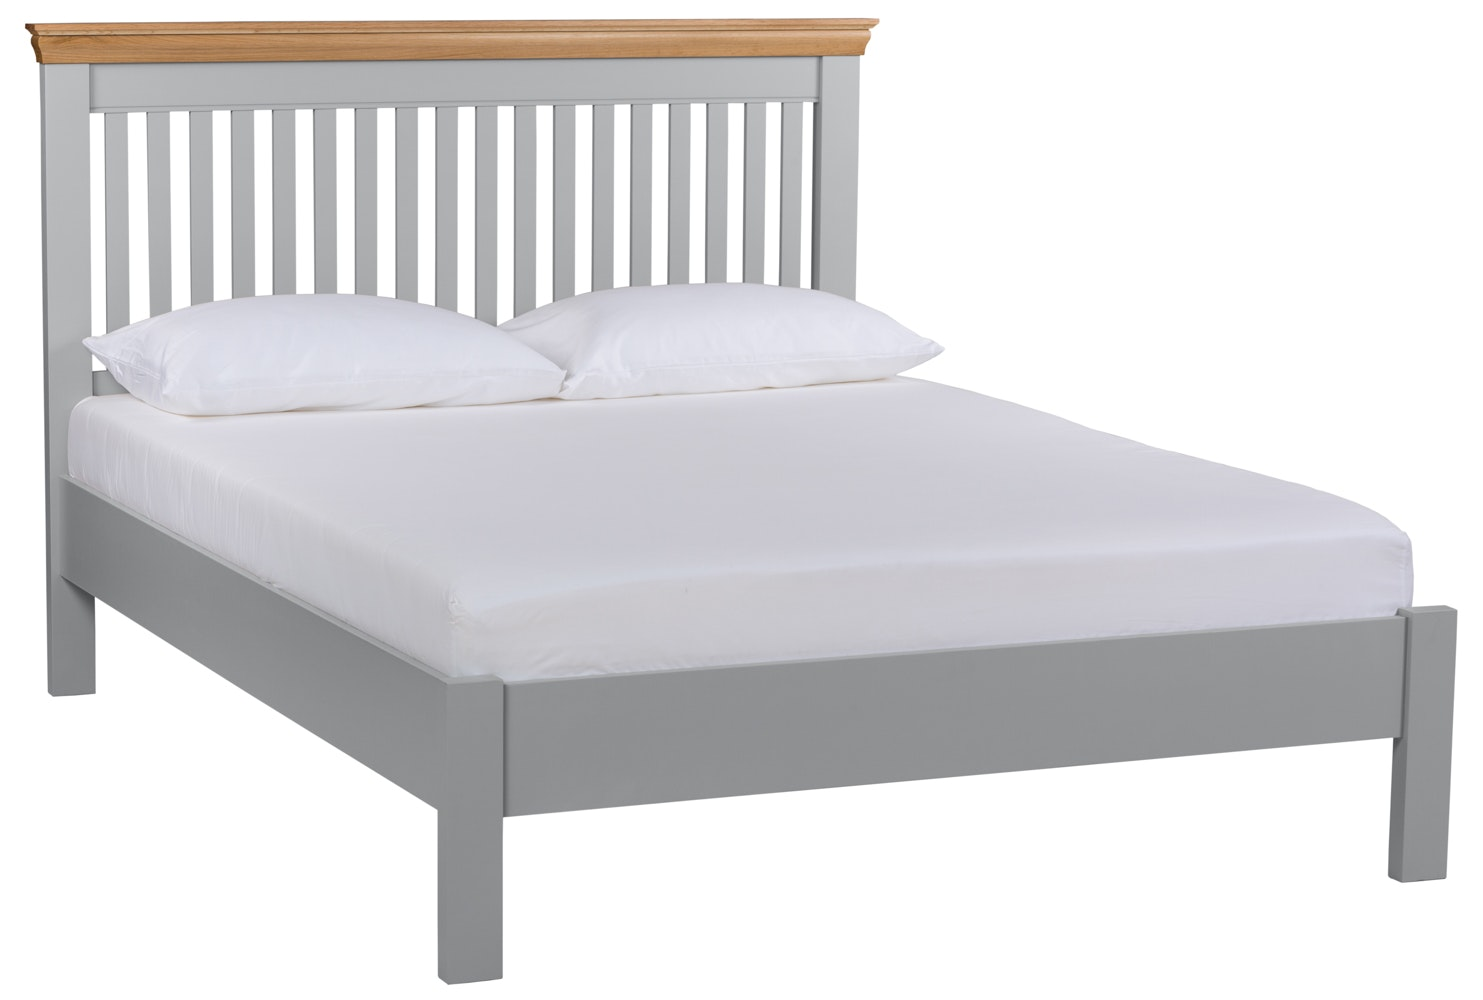 Ascott Bedframe | Colourtrend| 5ft